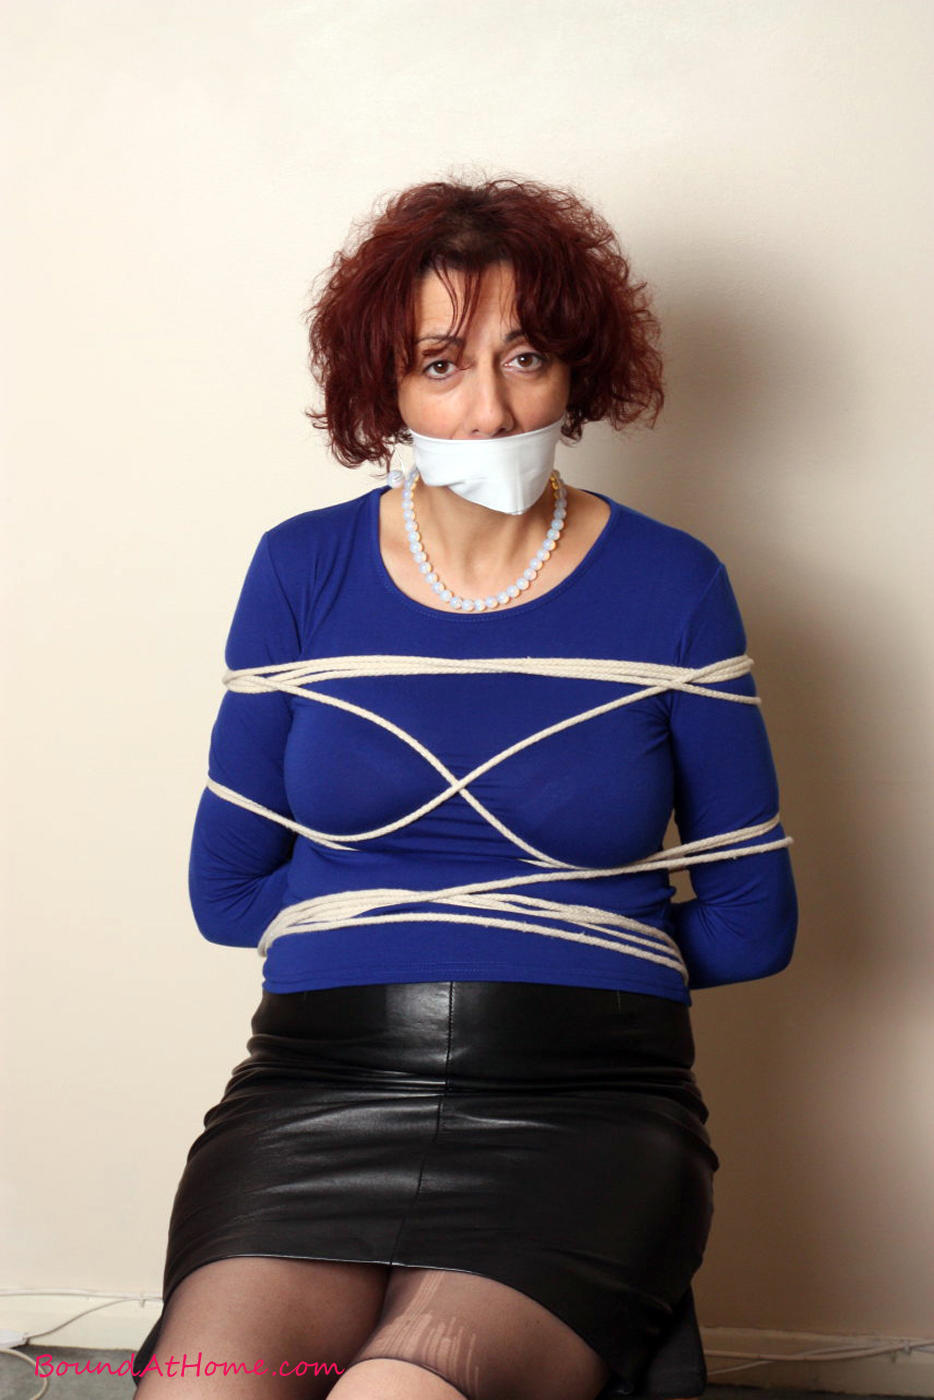 porno-sex-tied-gagged-mature-women-movies-post-young